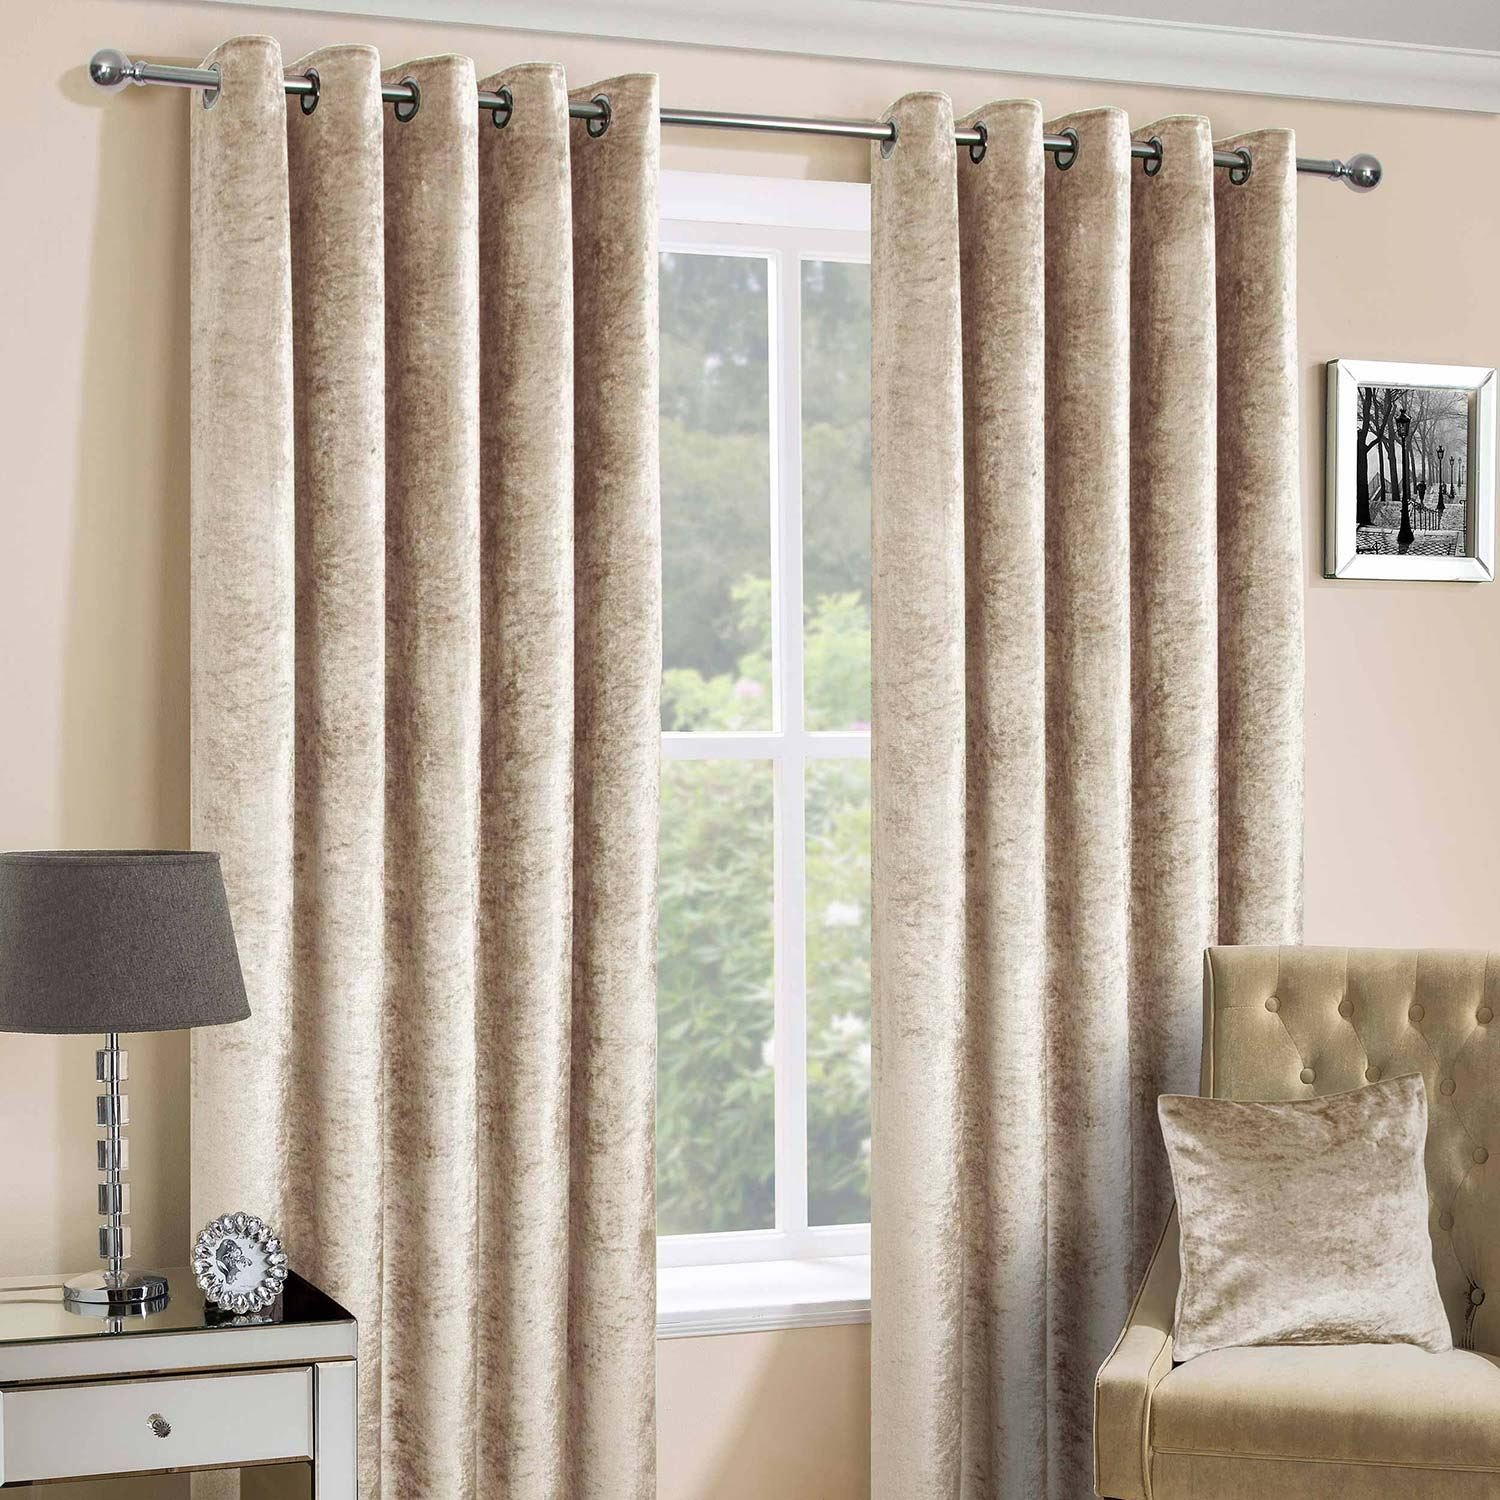 Homescapes Champagne Crushed Velvet Lined Curtain Pair 46 x 54 Inch Drop (117 x 137 cm) Luxury Heavy Weight Contemporary Neutral Eyelet Curtains